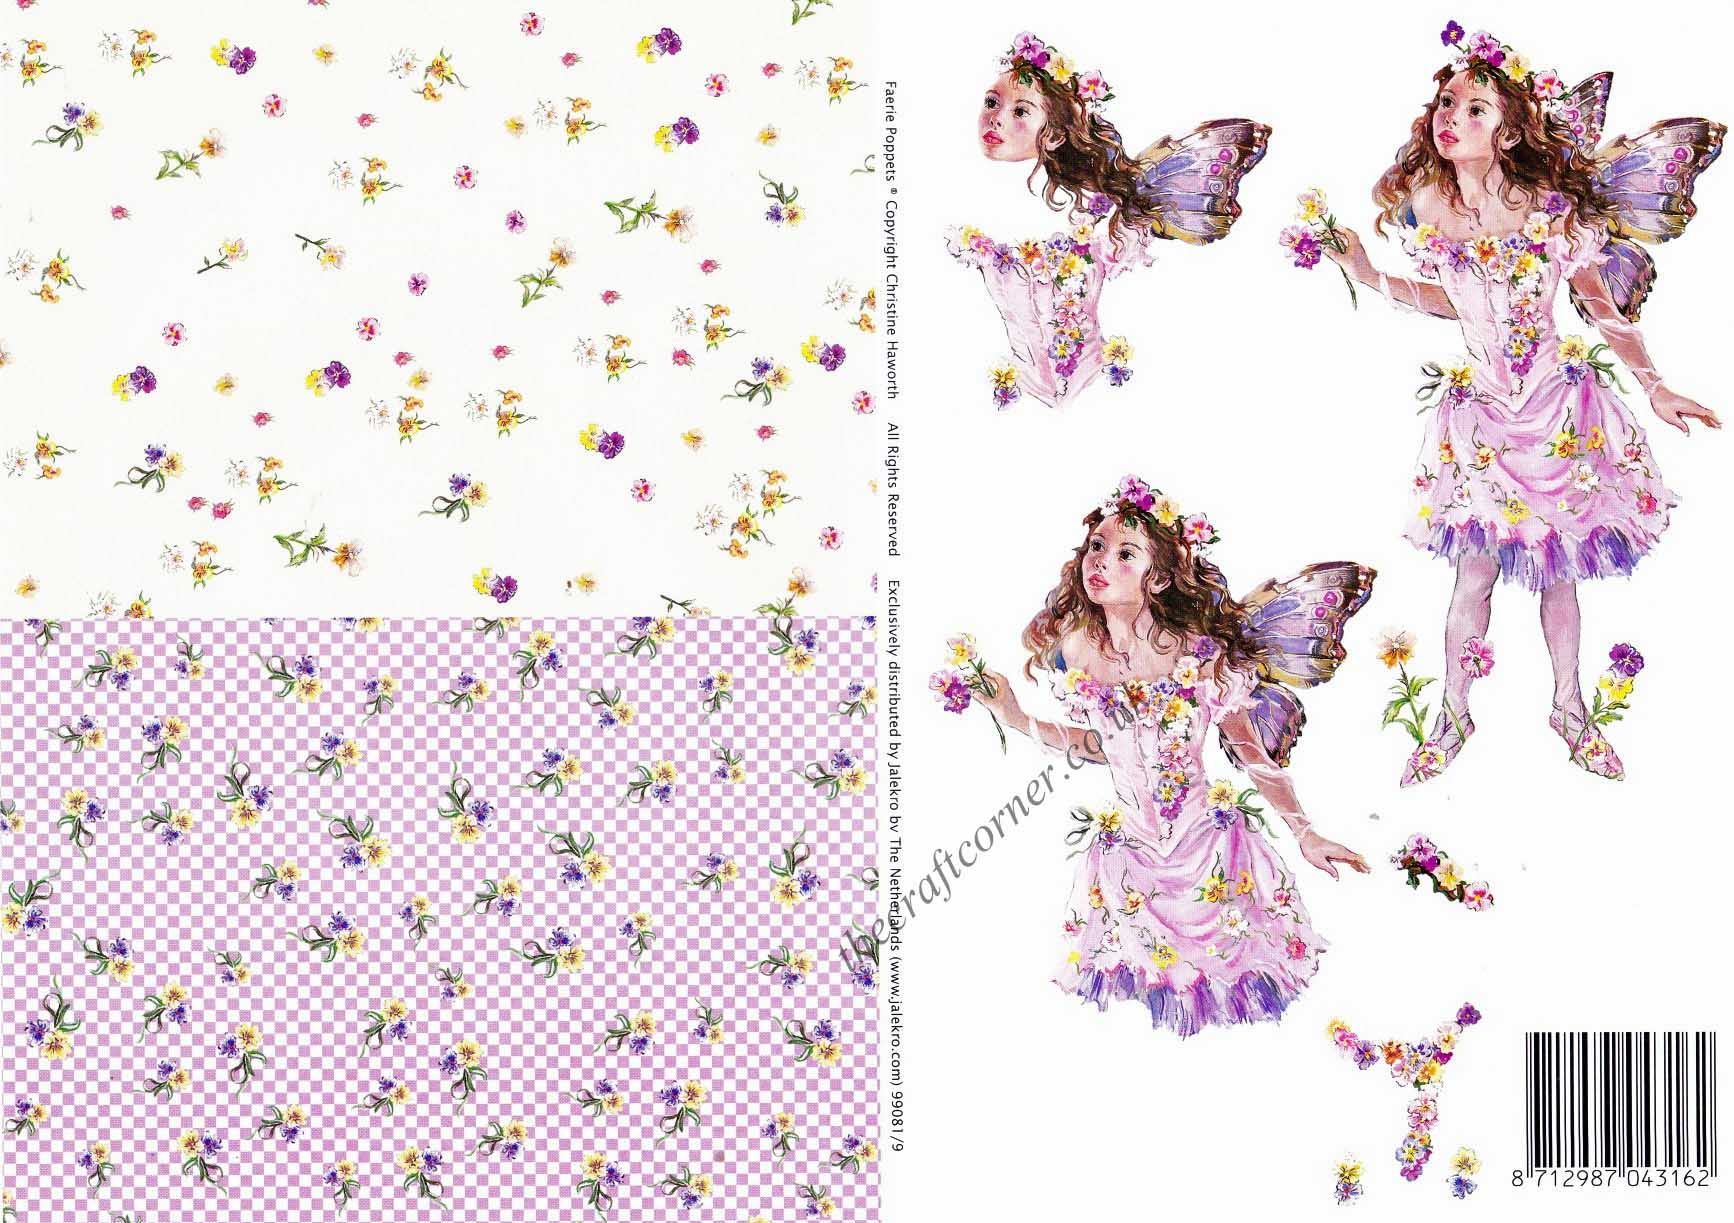 Faerie Poppets 9 3d Decoupage Amp Backing Paper Designed By